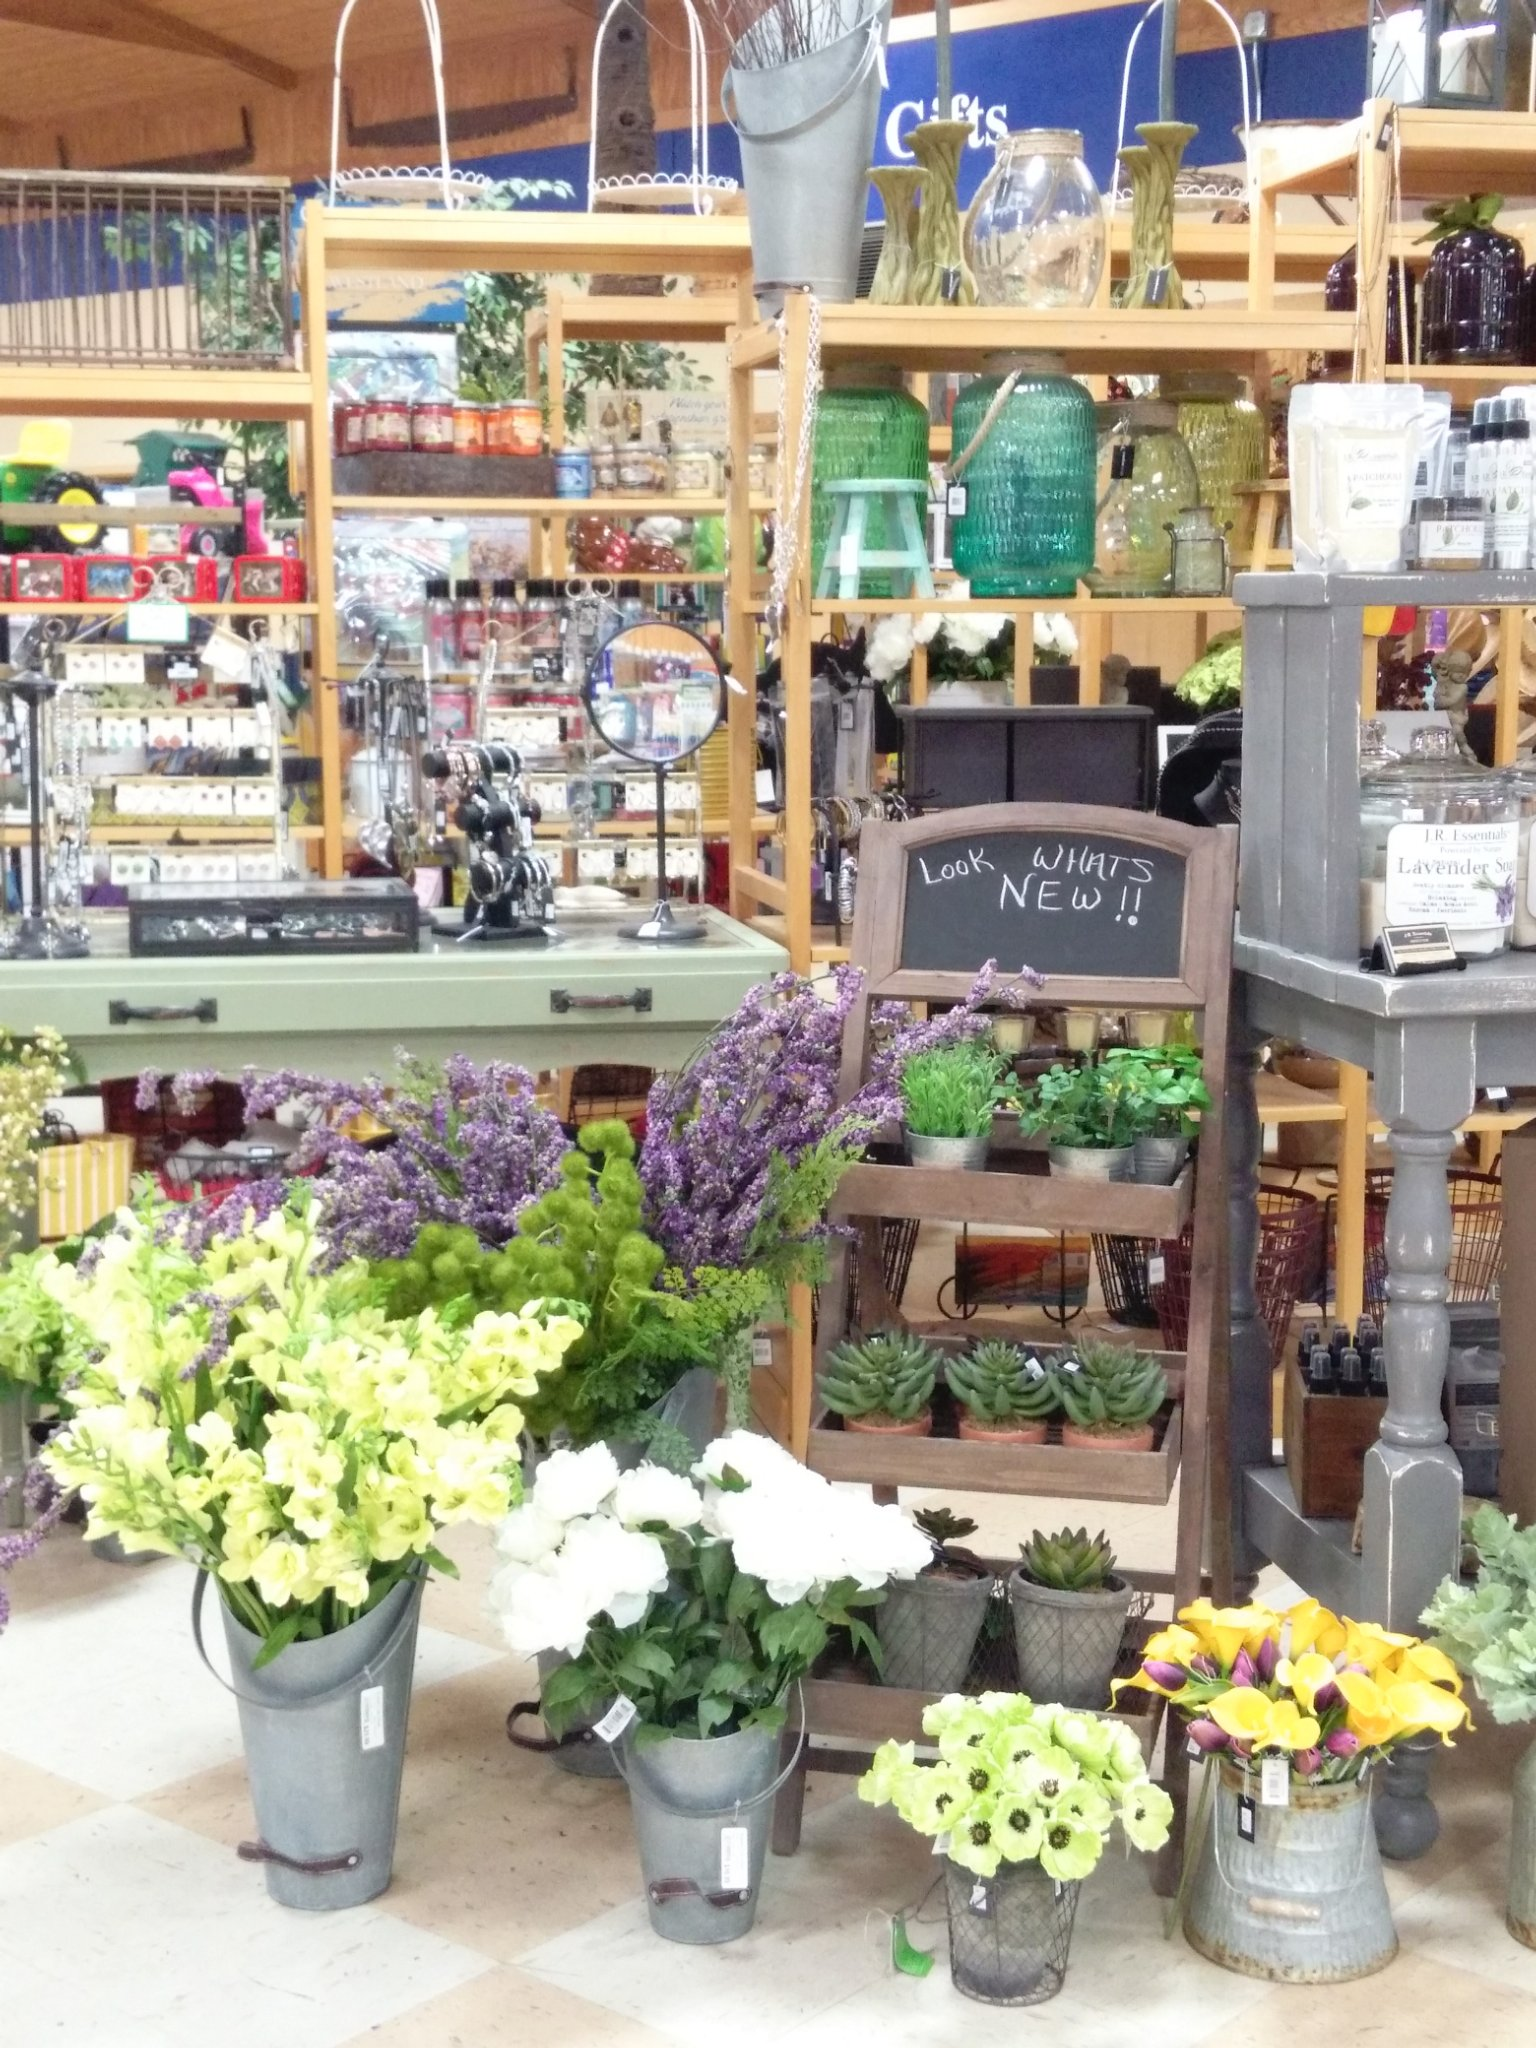 All Orchard Supply Hardware locations are listed on Garden Center Guide US, so you'll always find a location near you. For more information about products that the garden center chain offers, go to the Orchard Supply Hardware website.